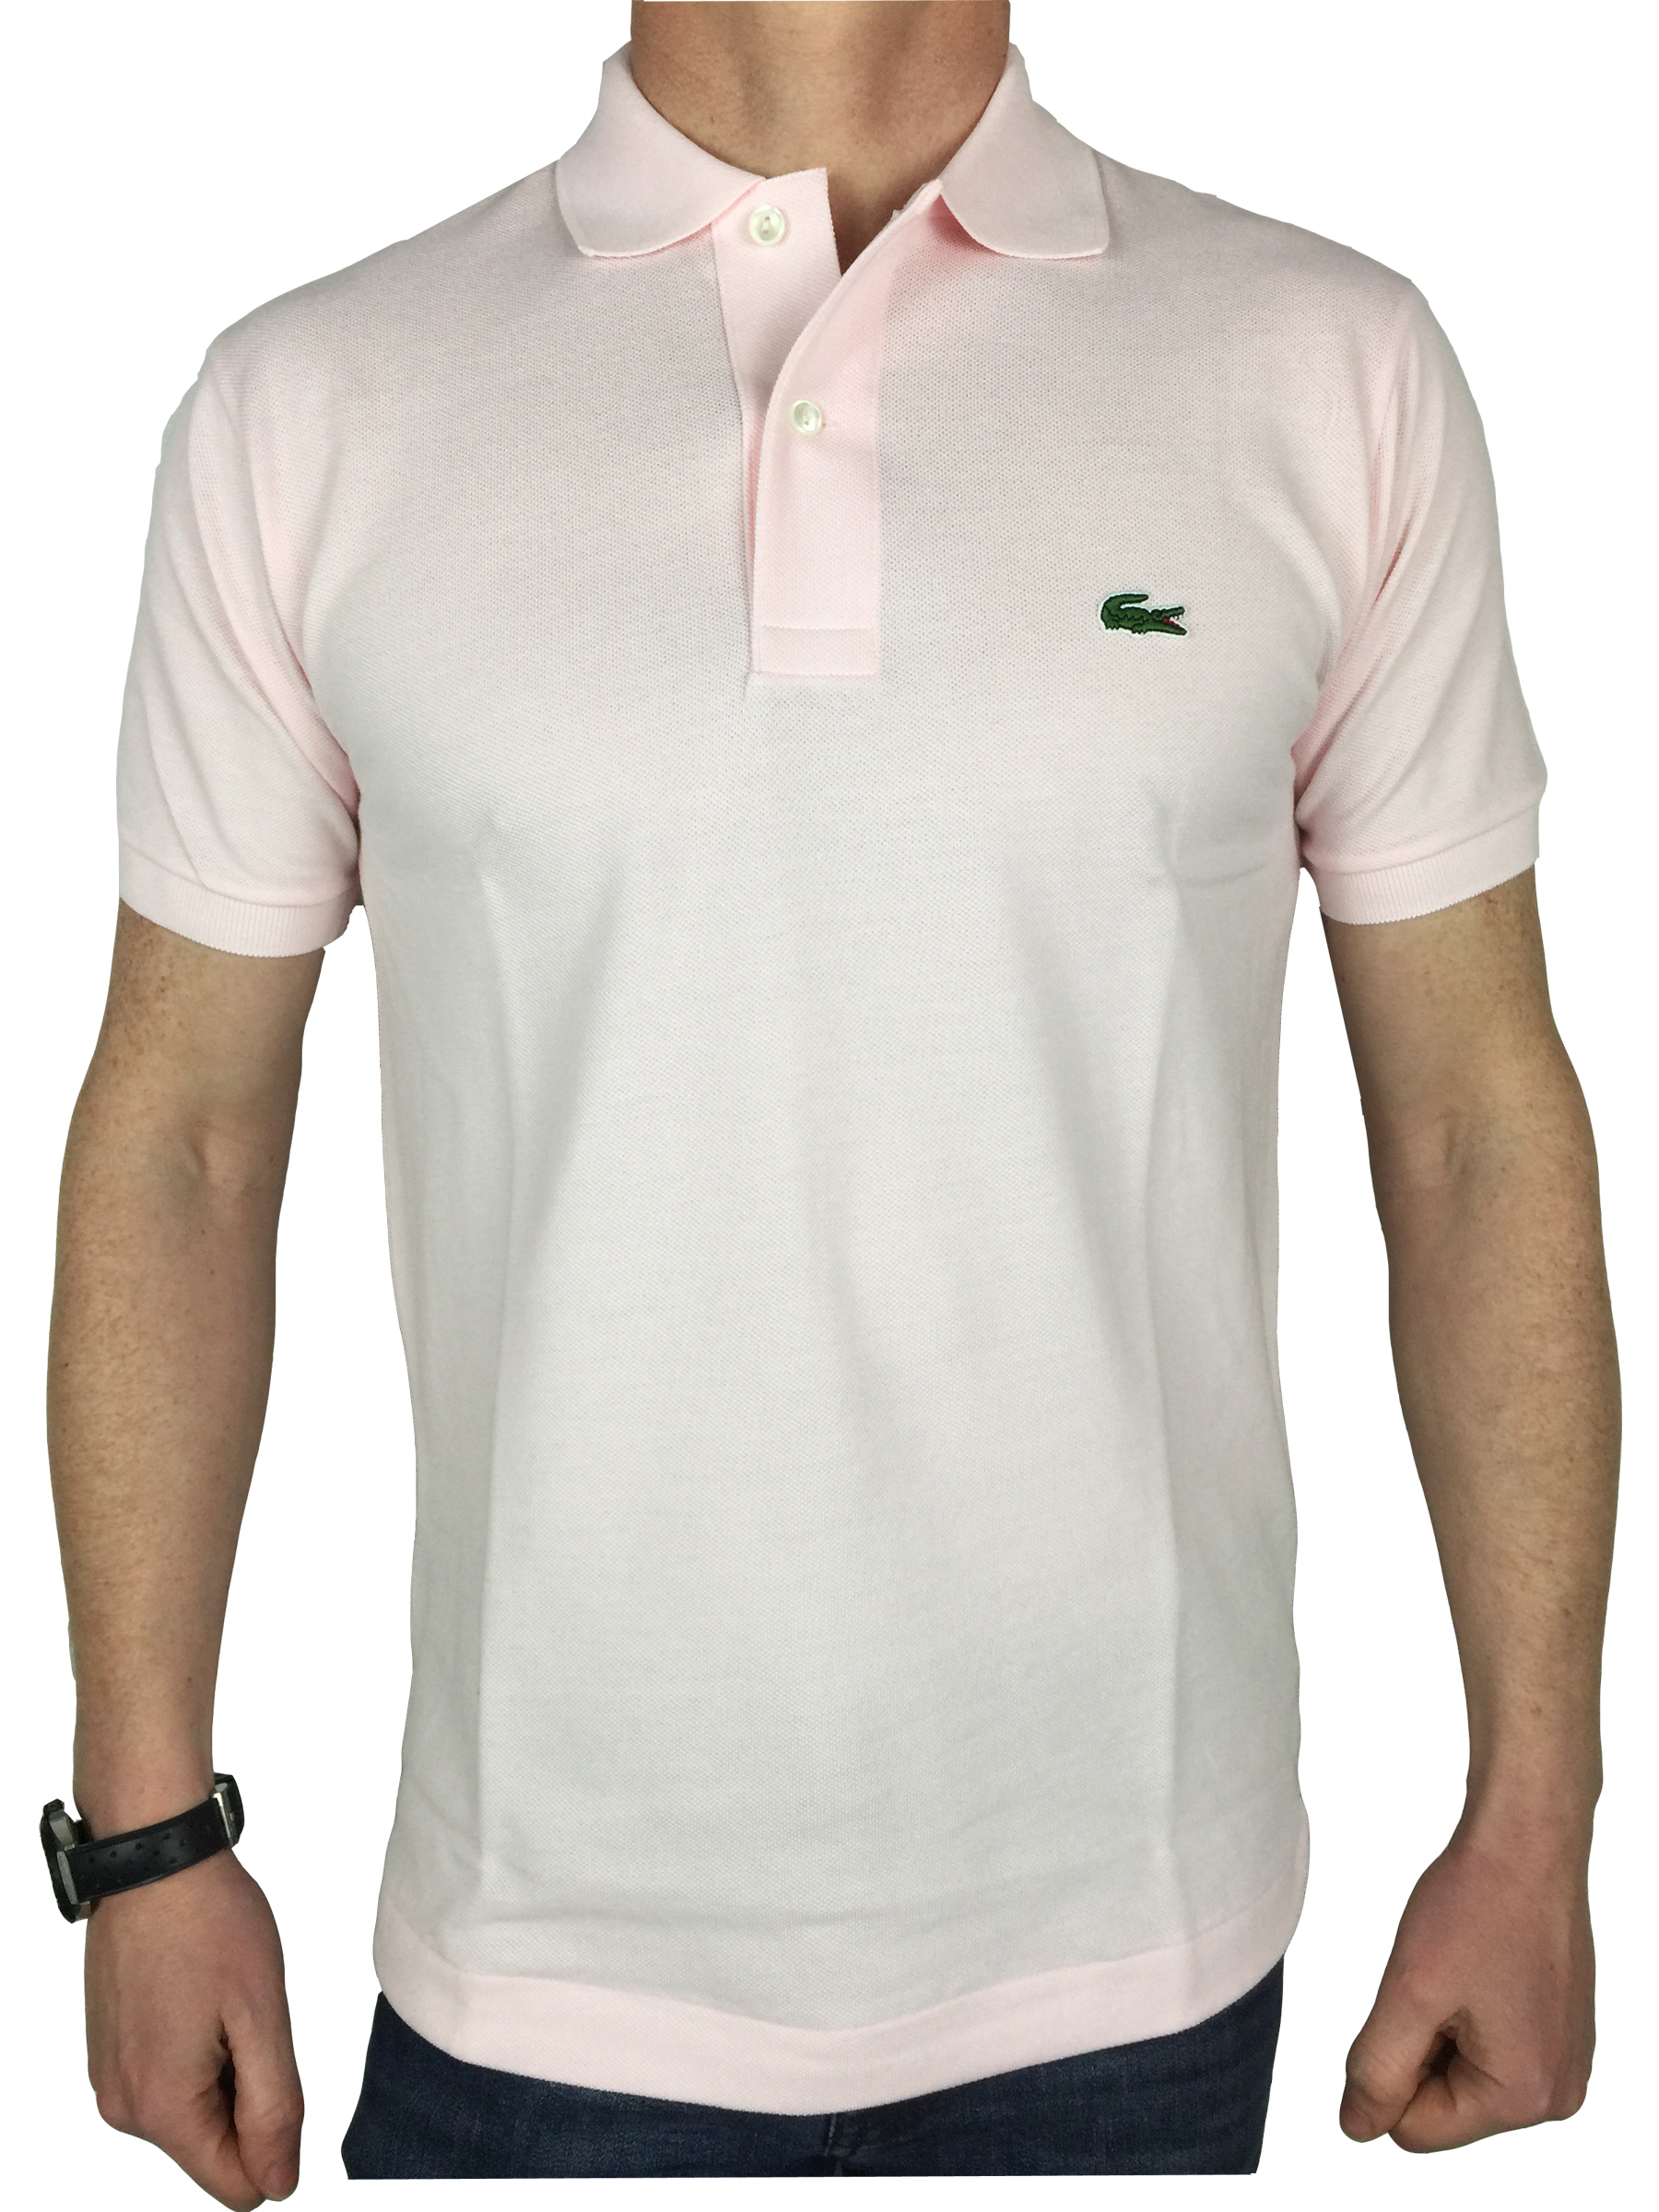 Lacoste mens s s logo branded polo shirt in flamingo pink for Mens branded polo shirts